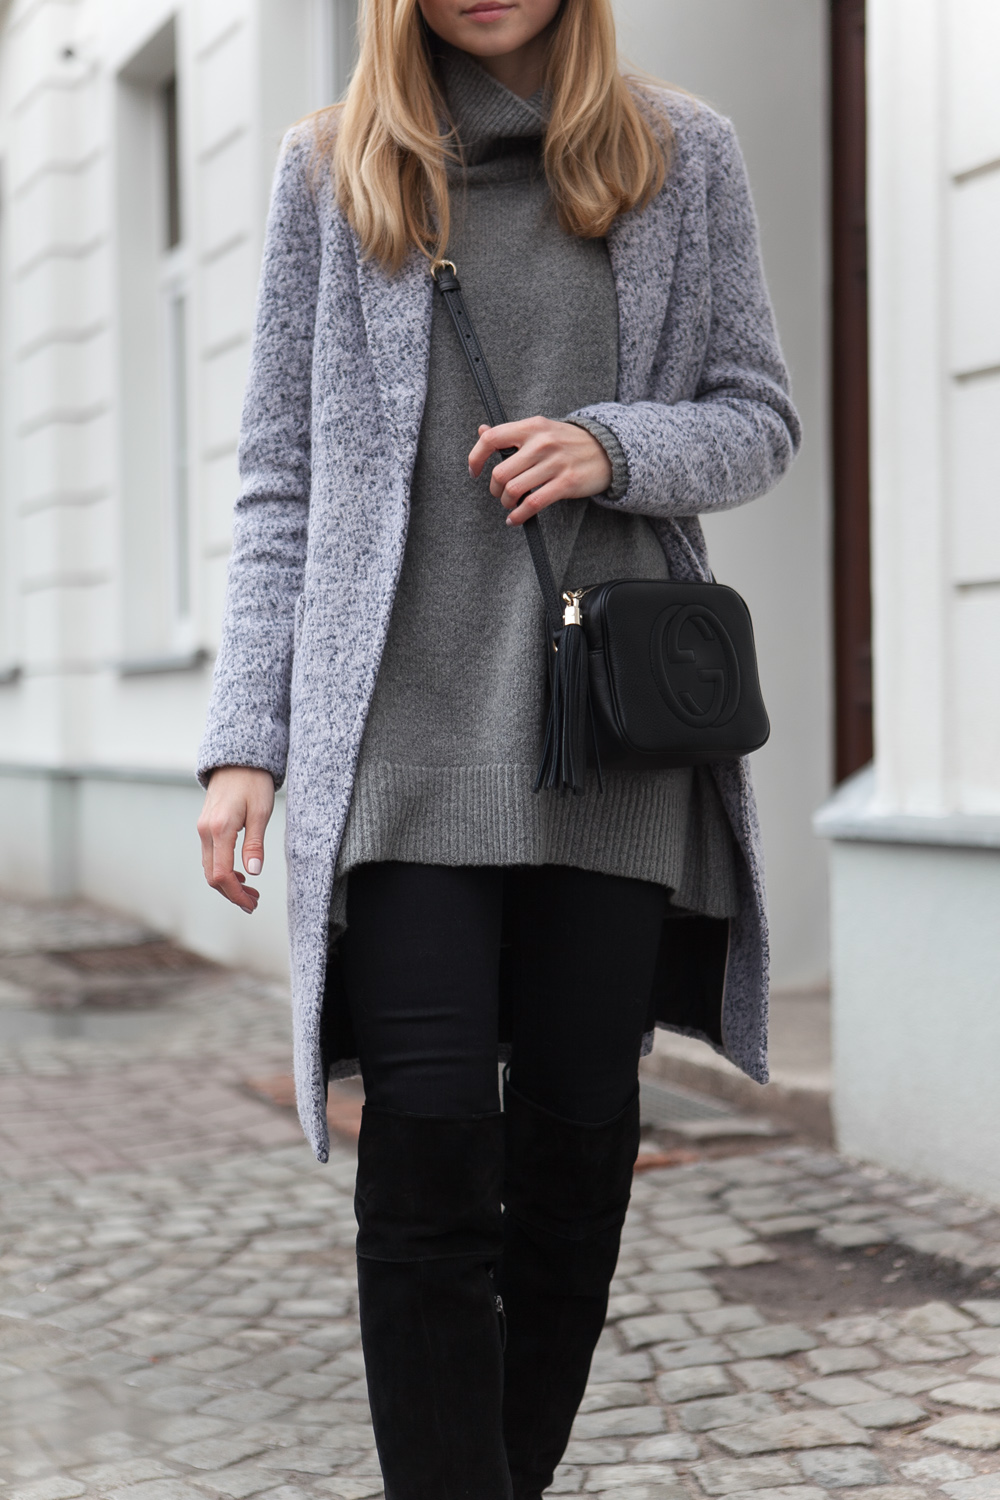 Neutral Street Style Via Jess A.